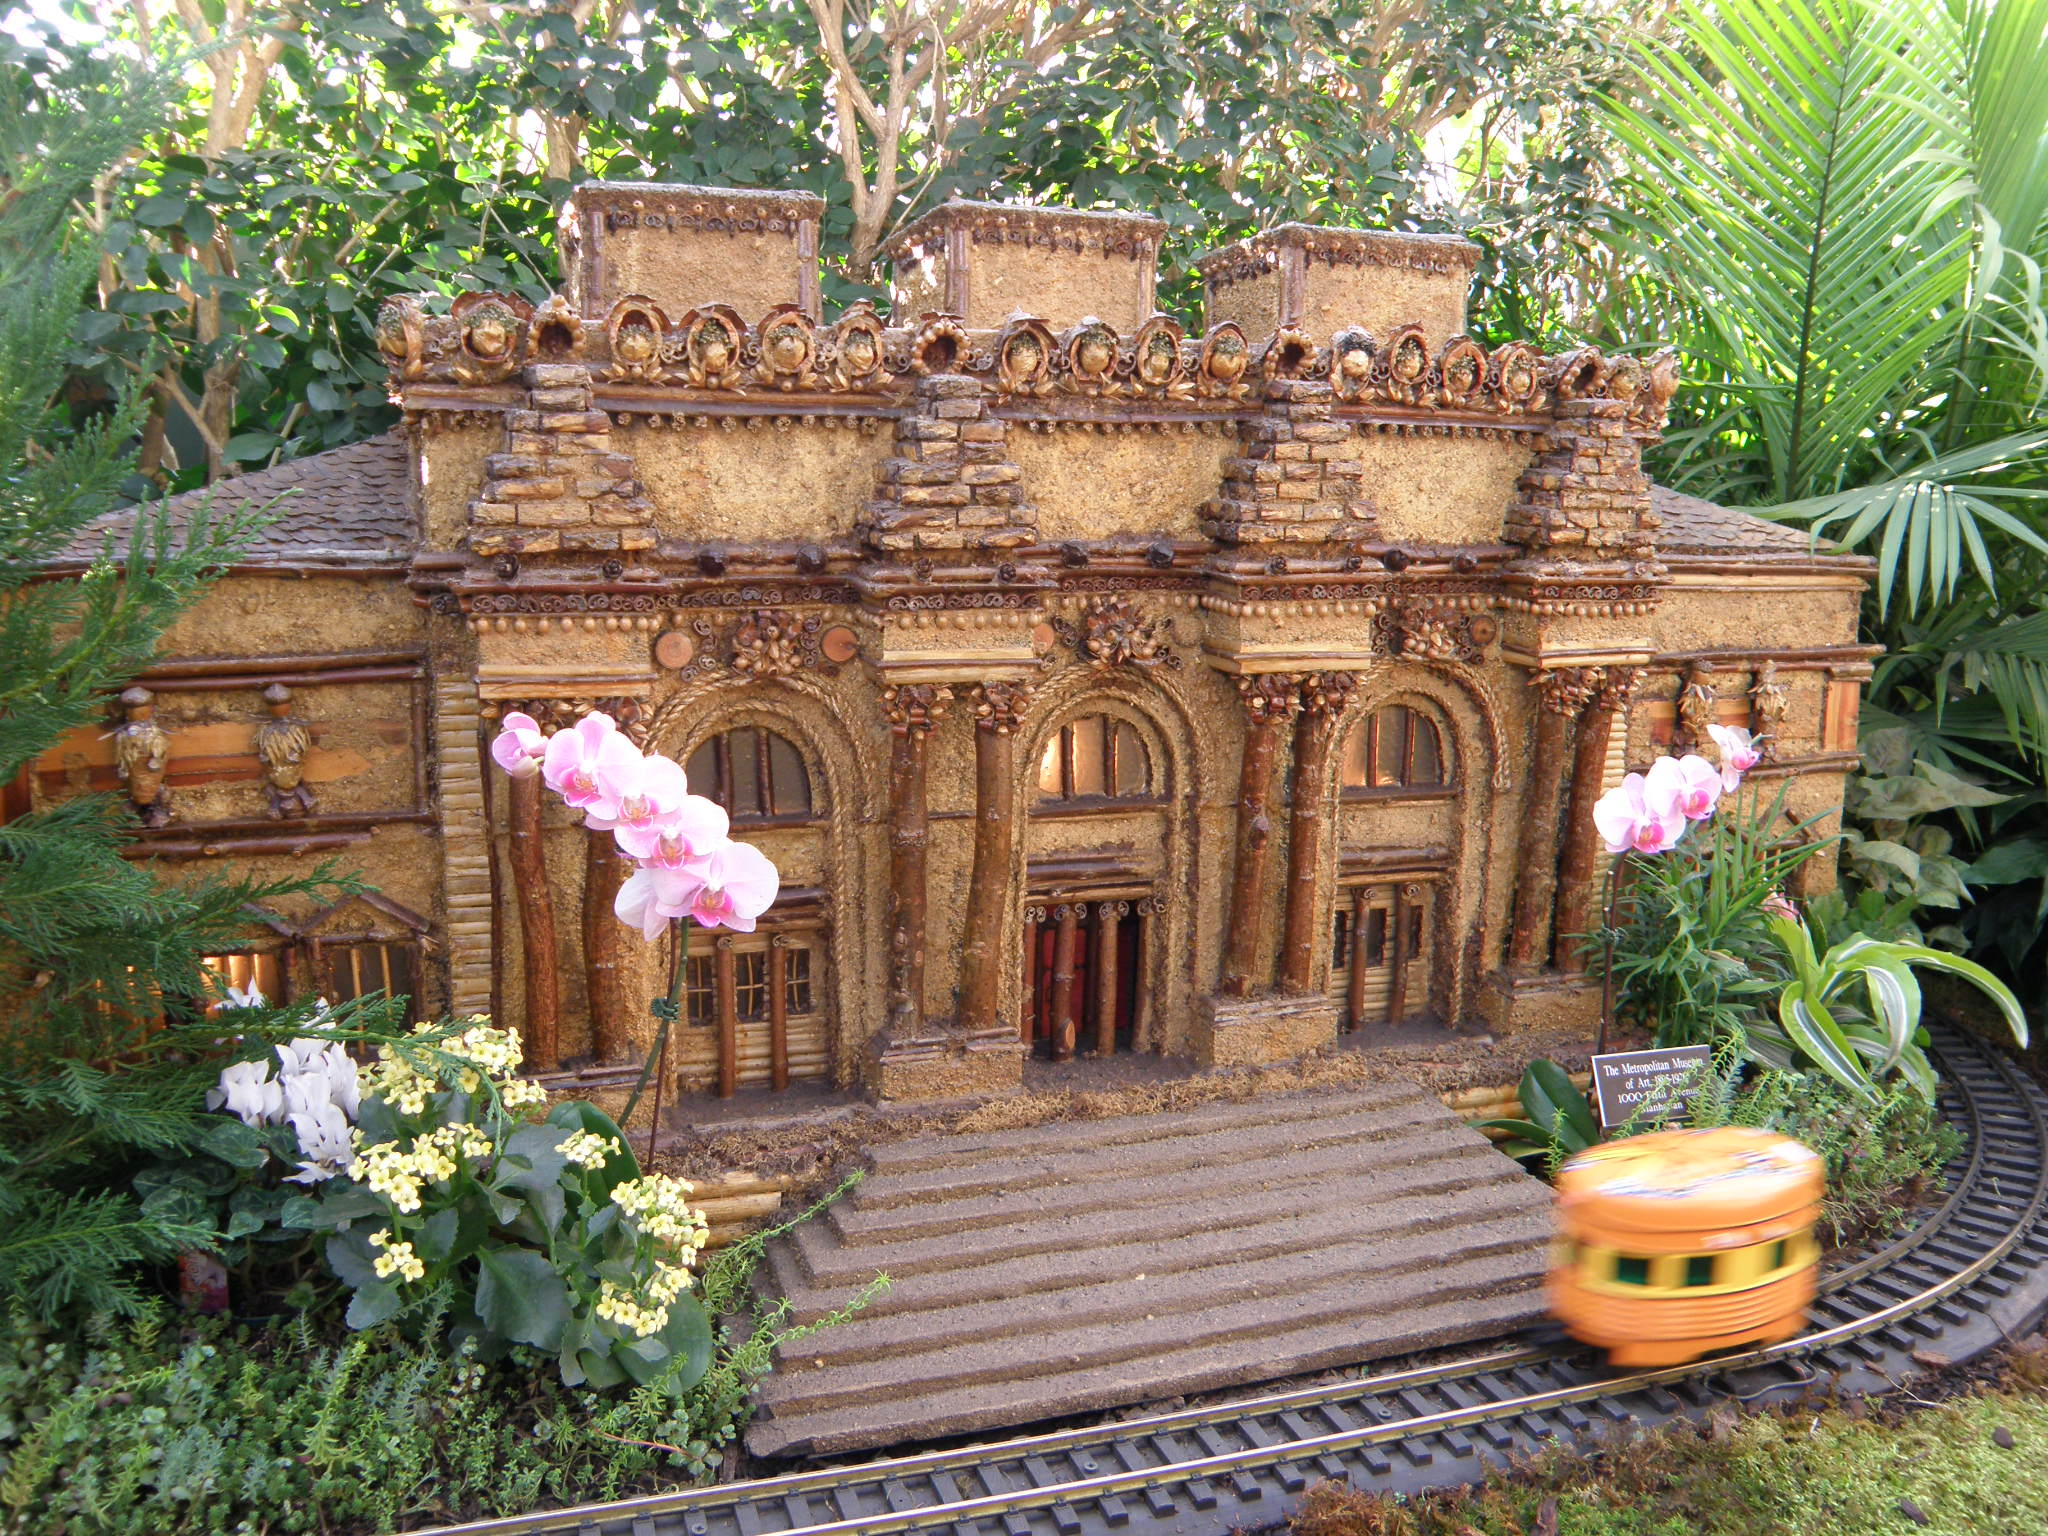 Merveilleux Holiday Train Show NY Botanical Gardens